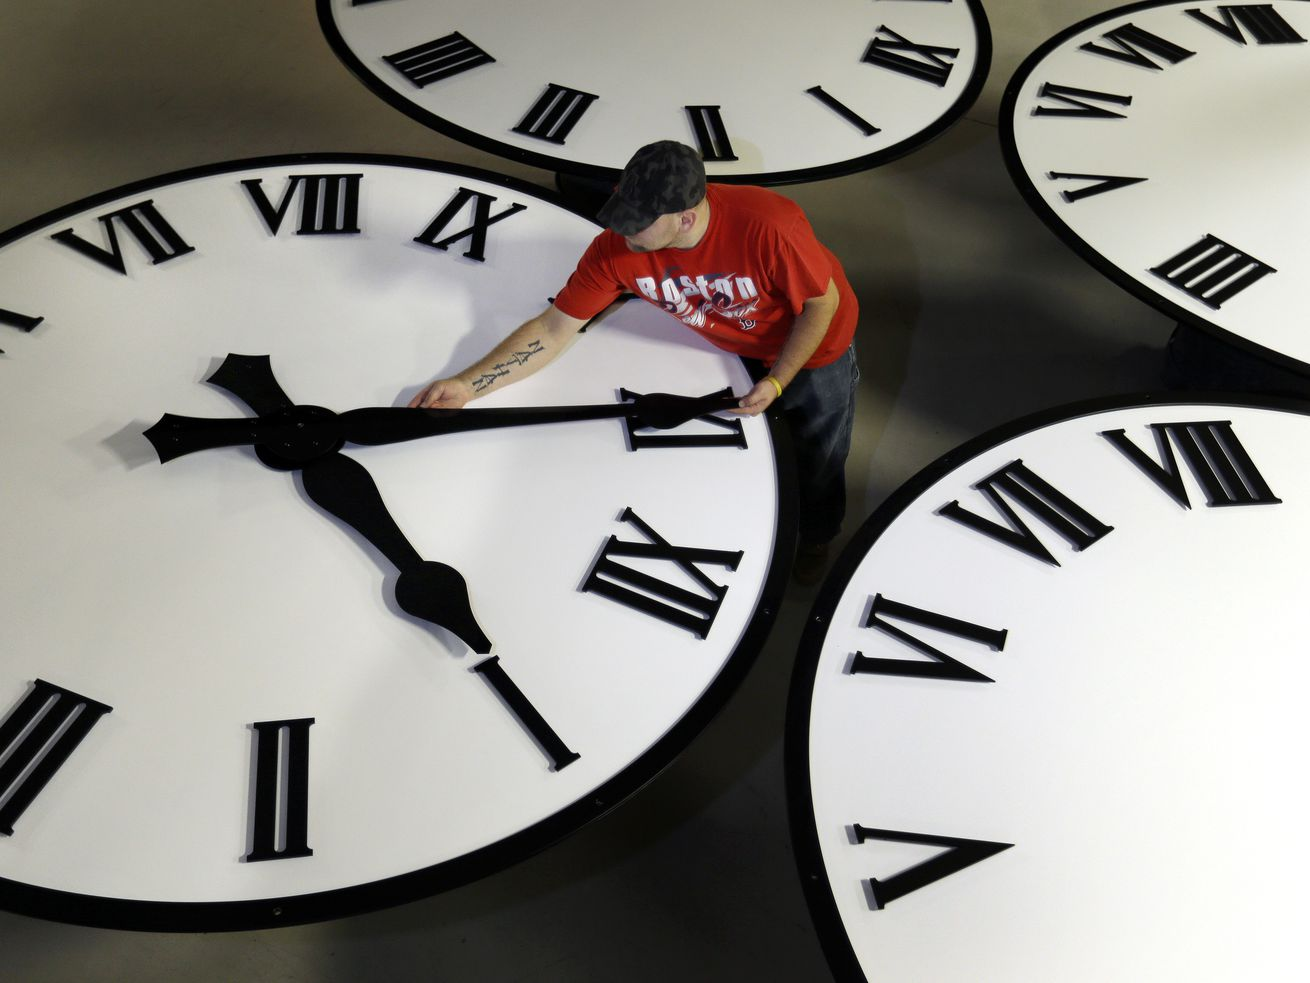 In our opinion: Daylight saving time — set the clock once and leave it alone